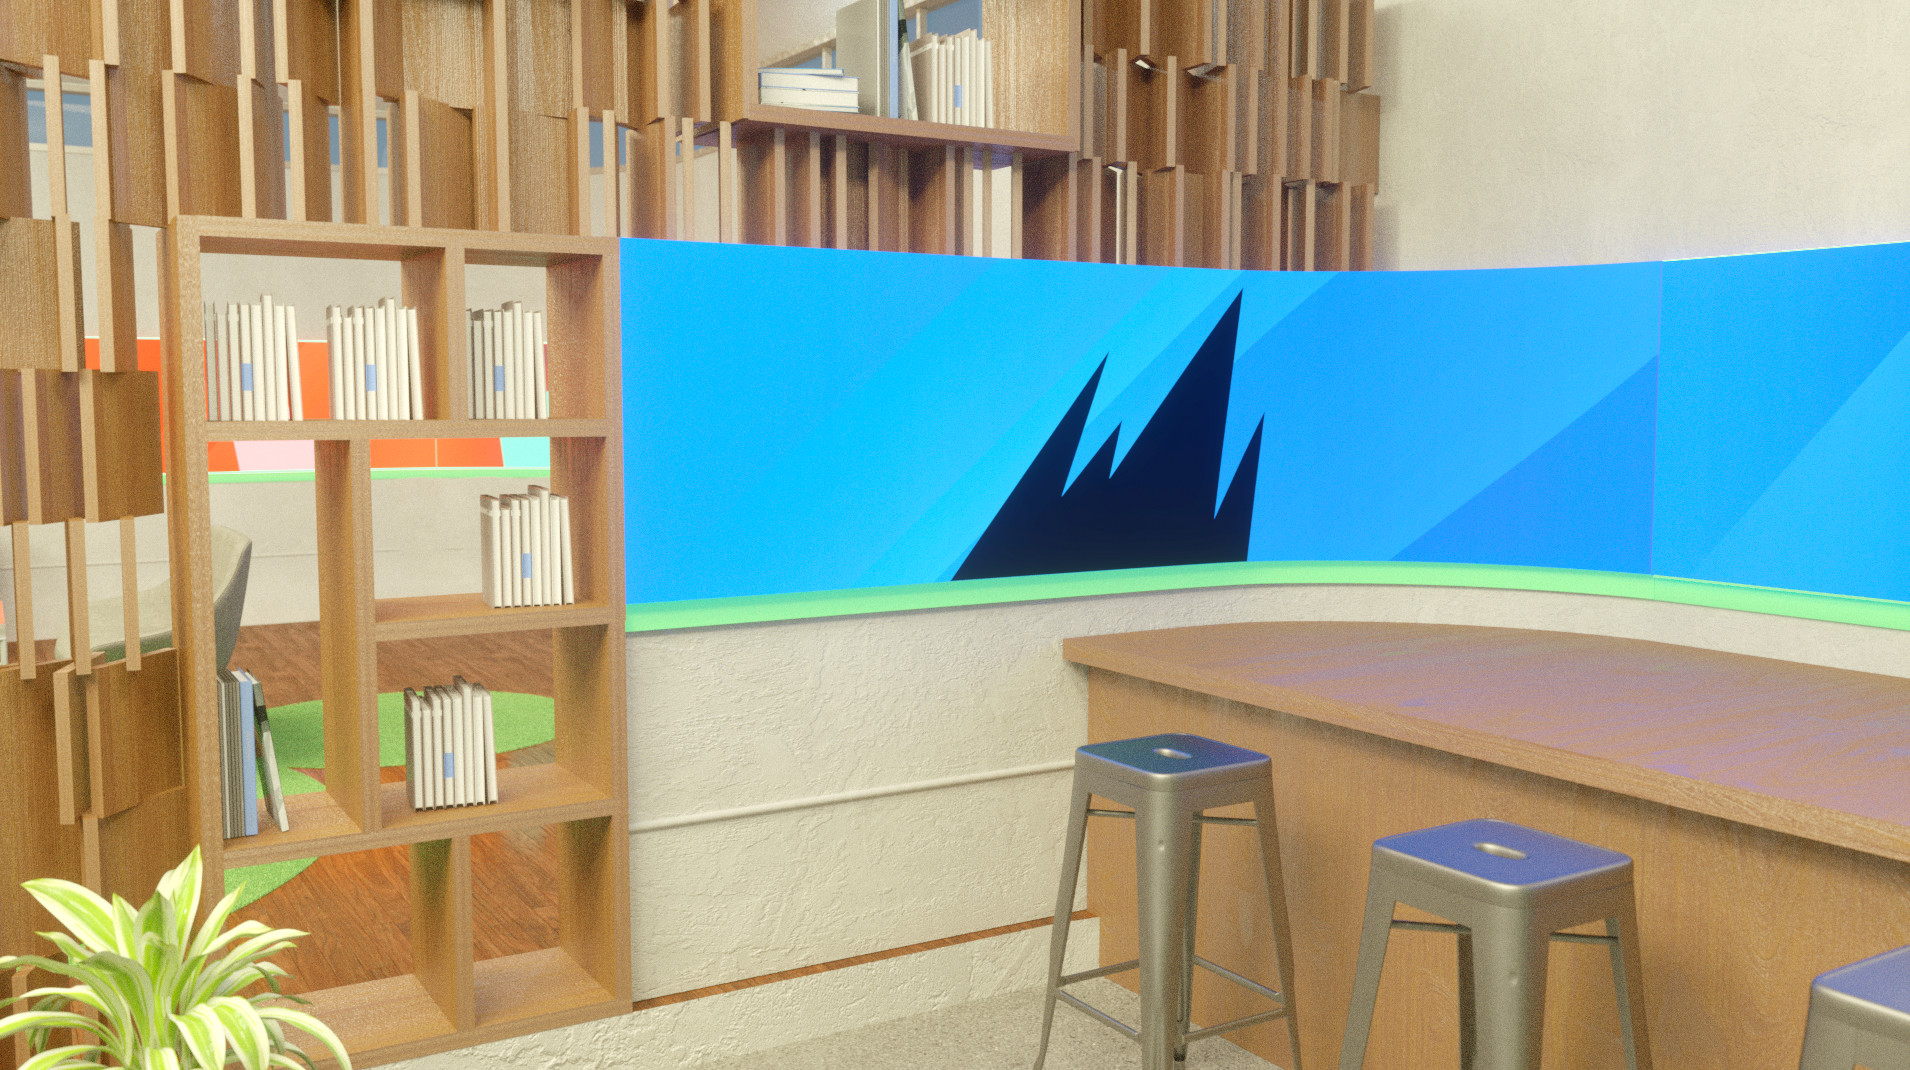 Spotify showroom concept.